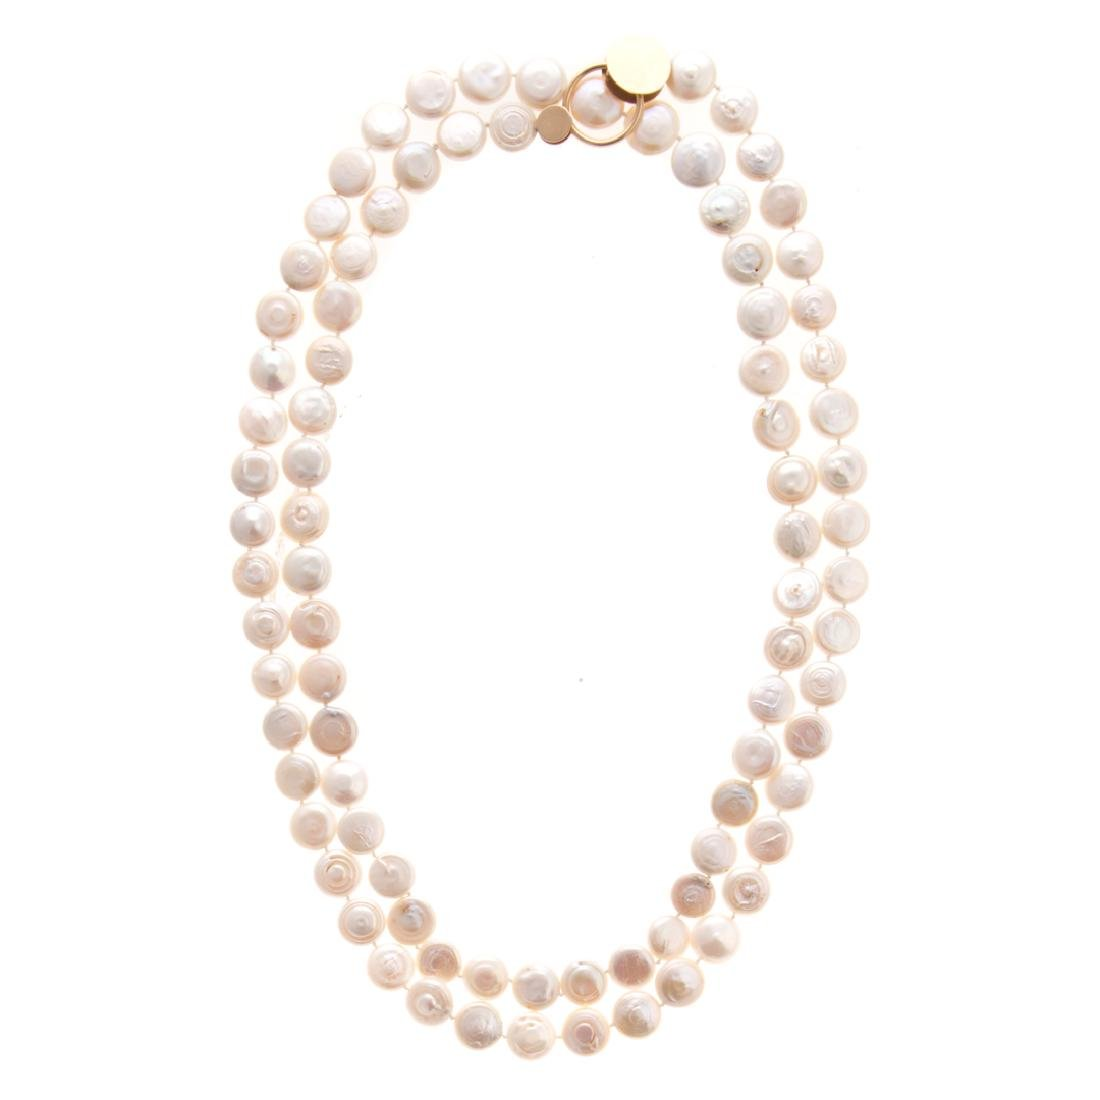 A Lady's Coin Pearl Necklace by Betty Cooke